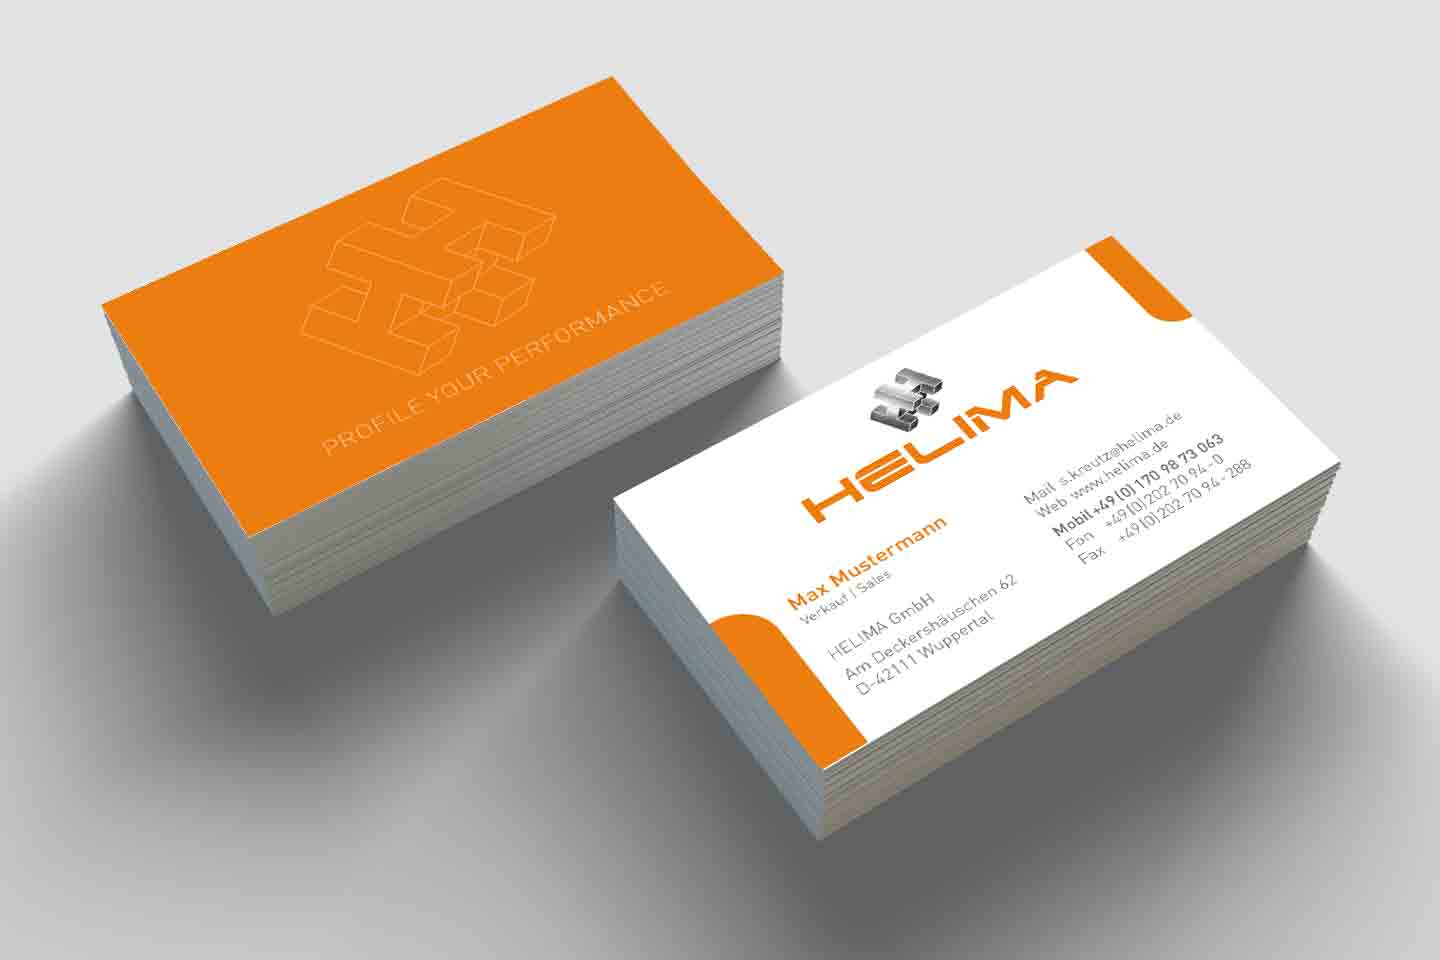 Helima Logo Corporate Design Keyvisual Webseite